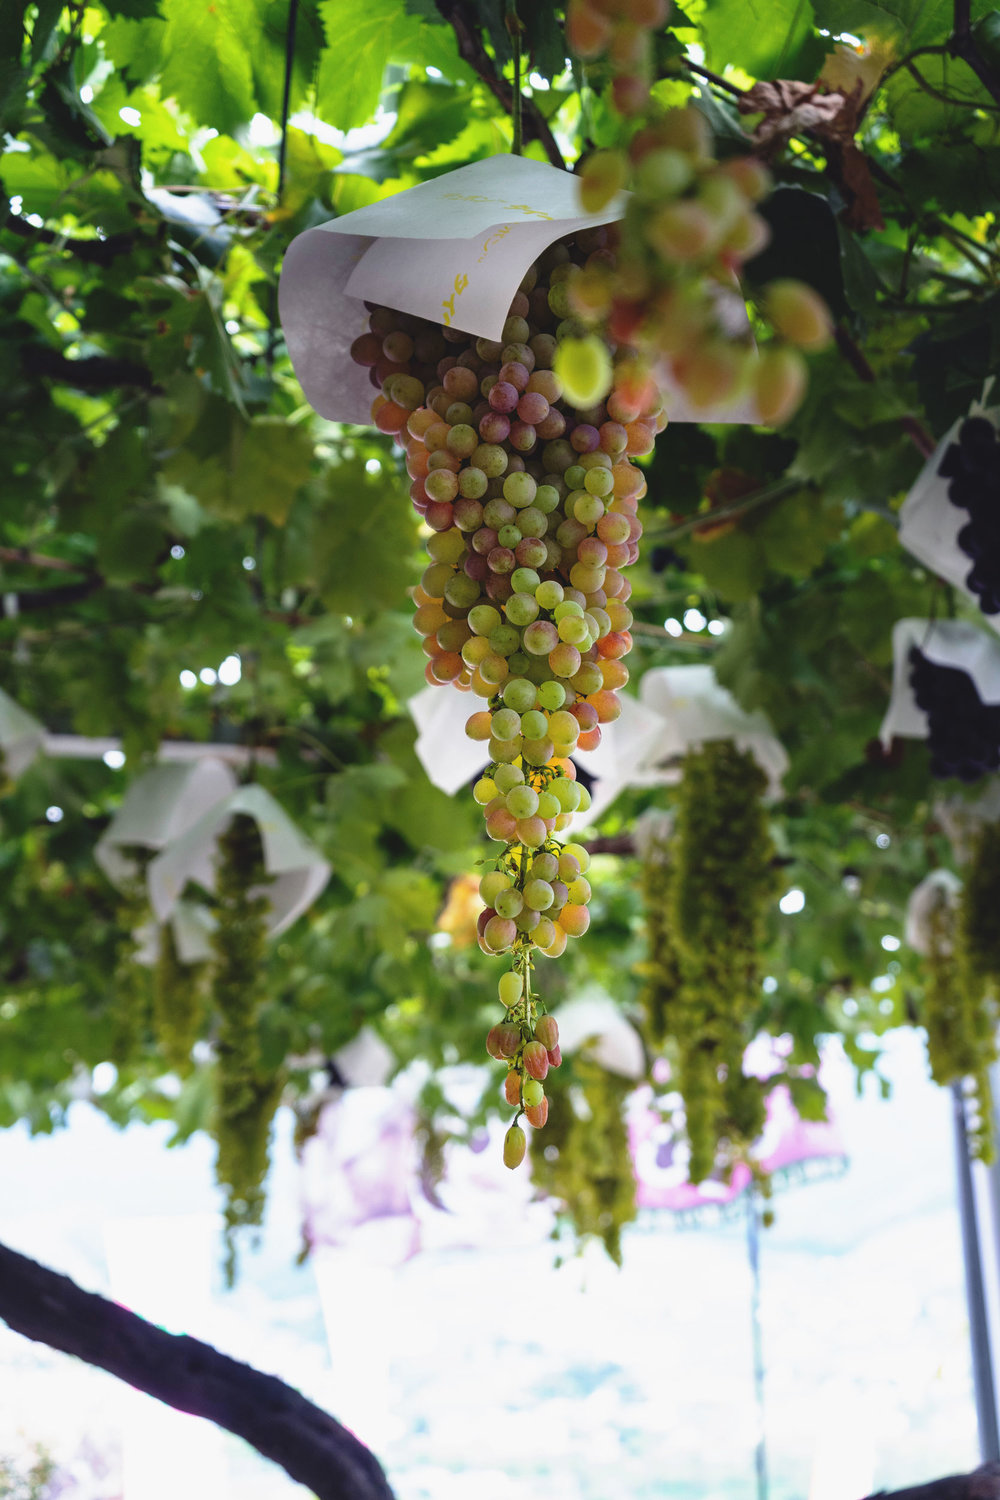 Grapes on the vine - each bunch gets a cover to protect it from the rain